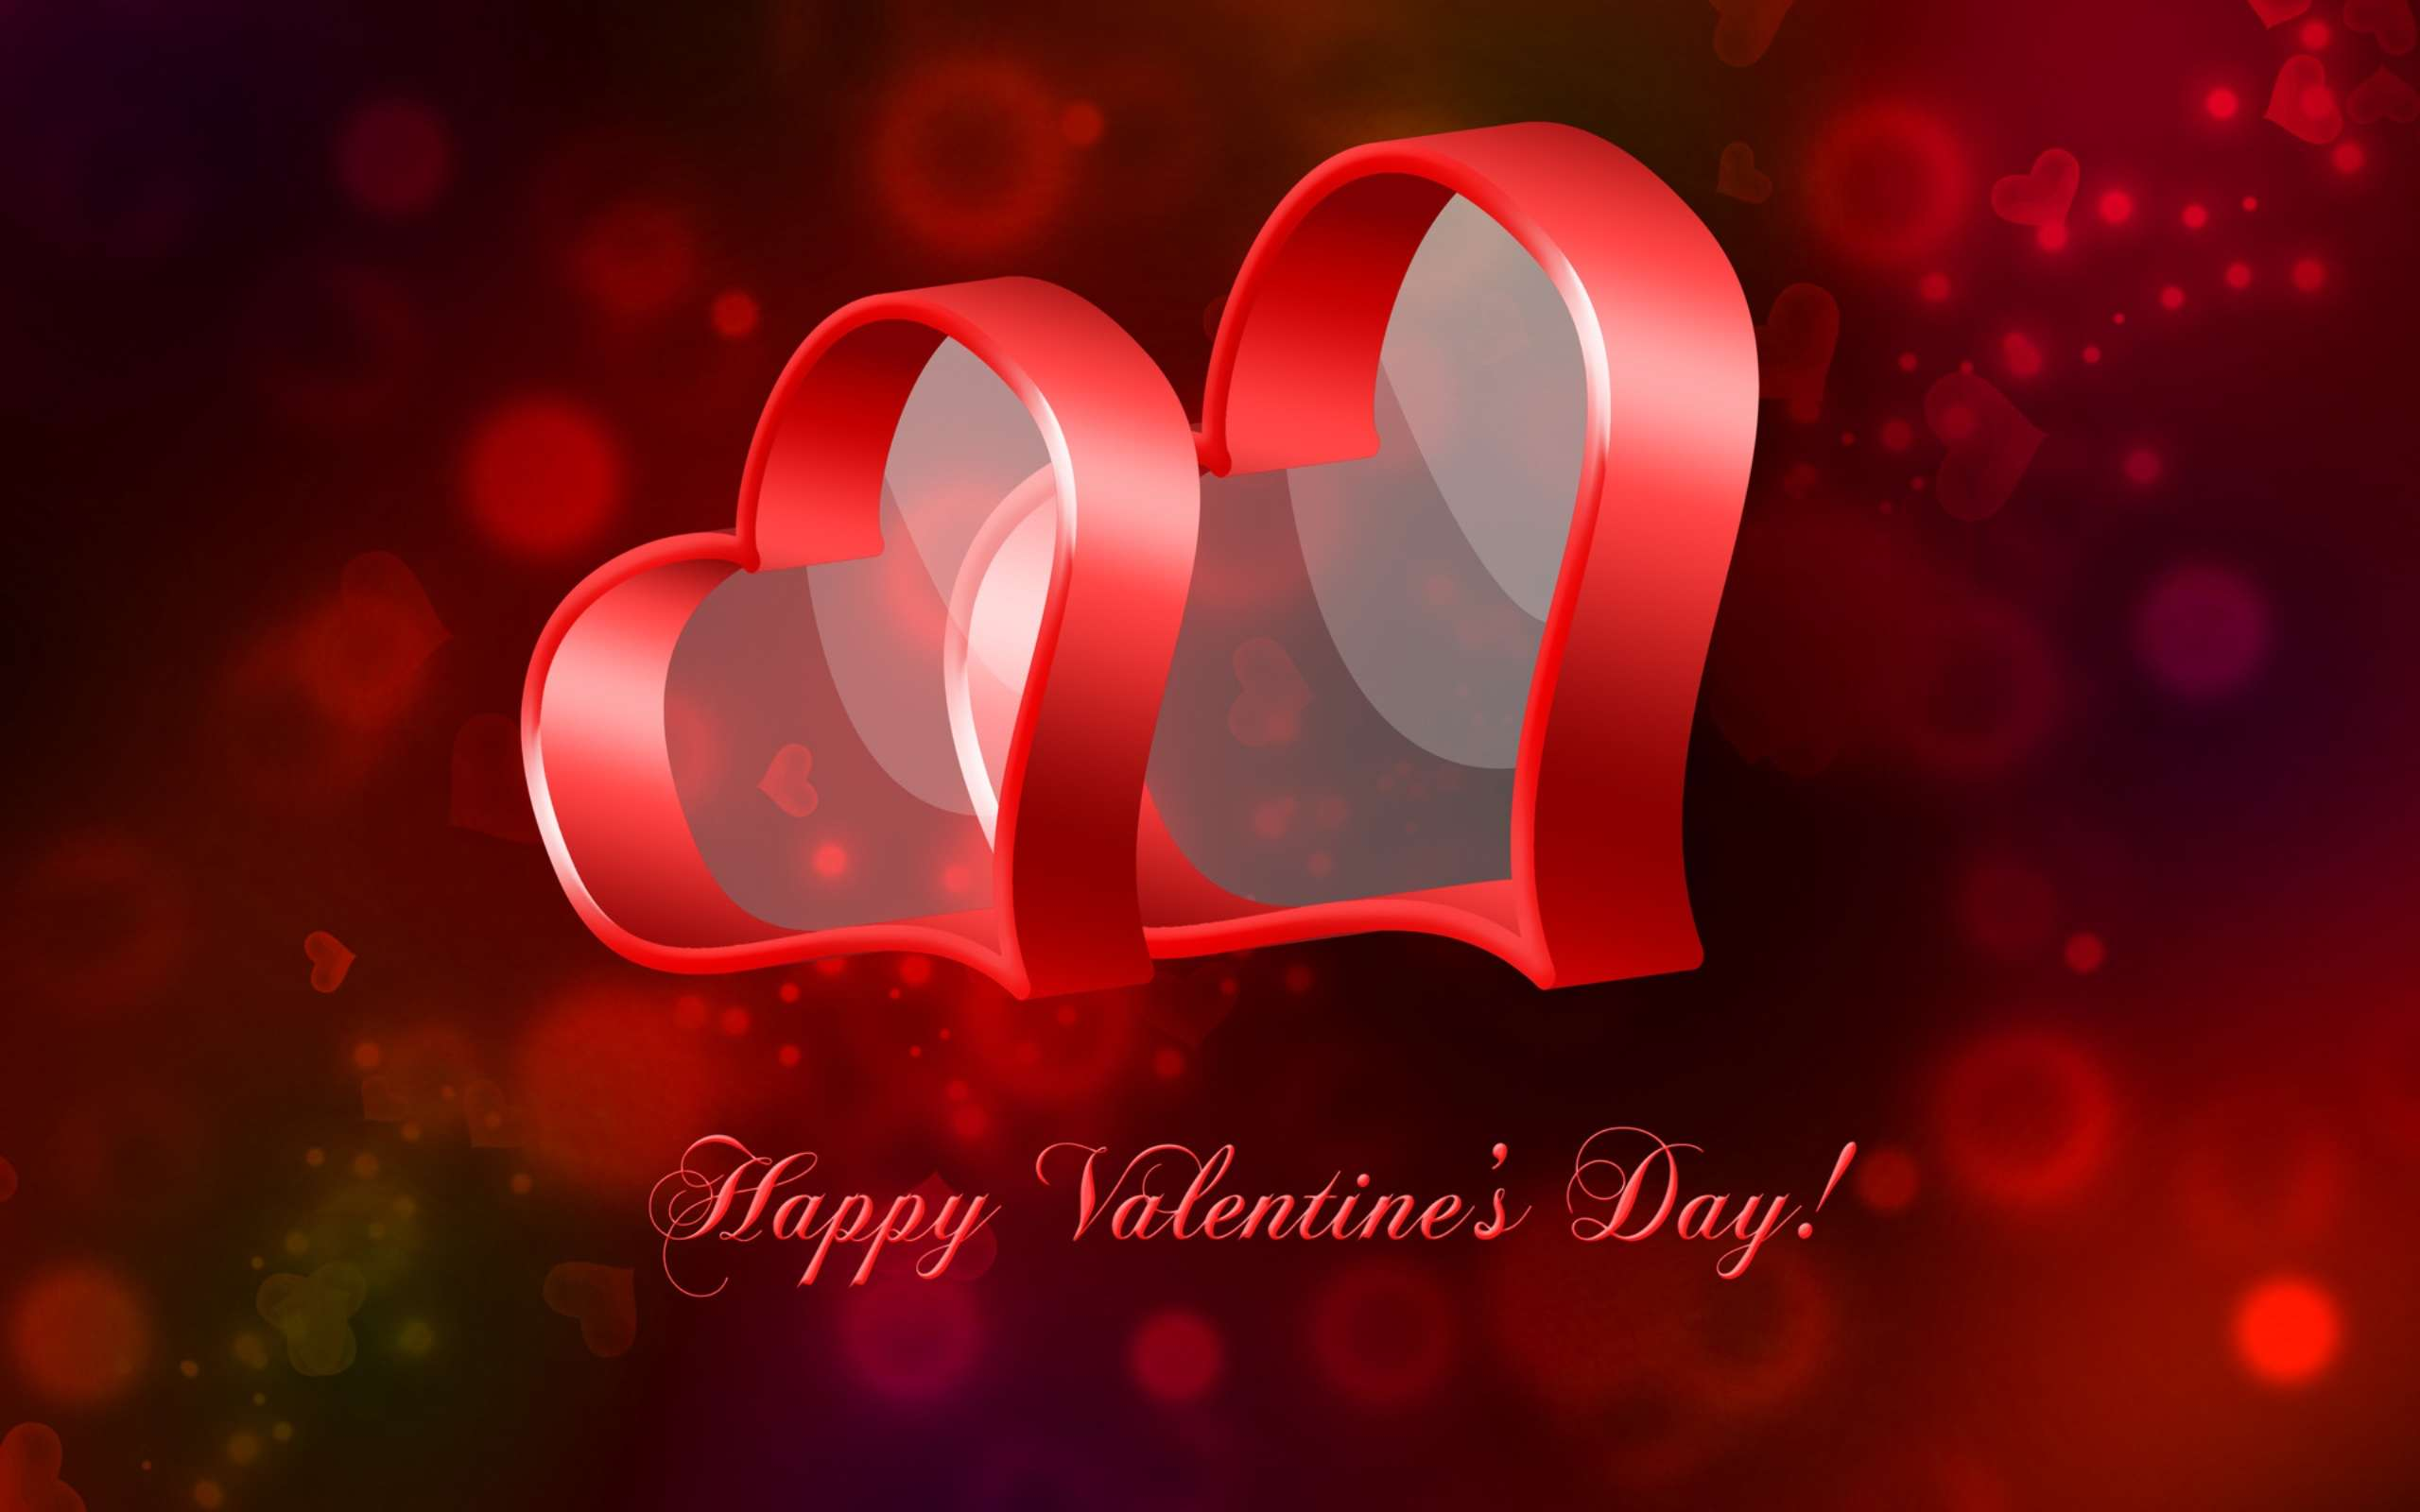 Happy Valentines Day Love Wallpapers 33 : Hd Wallpapers